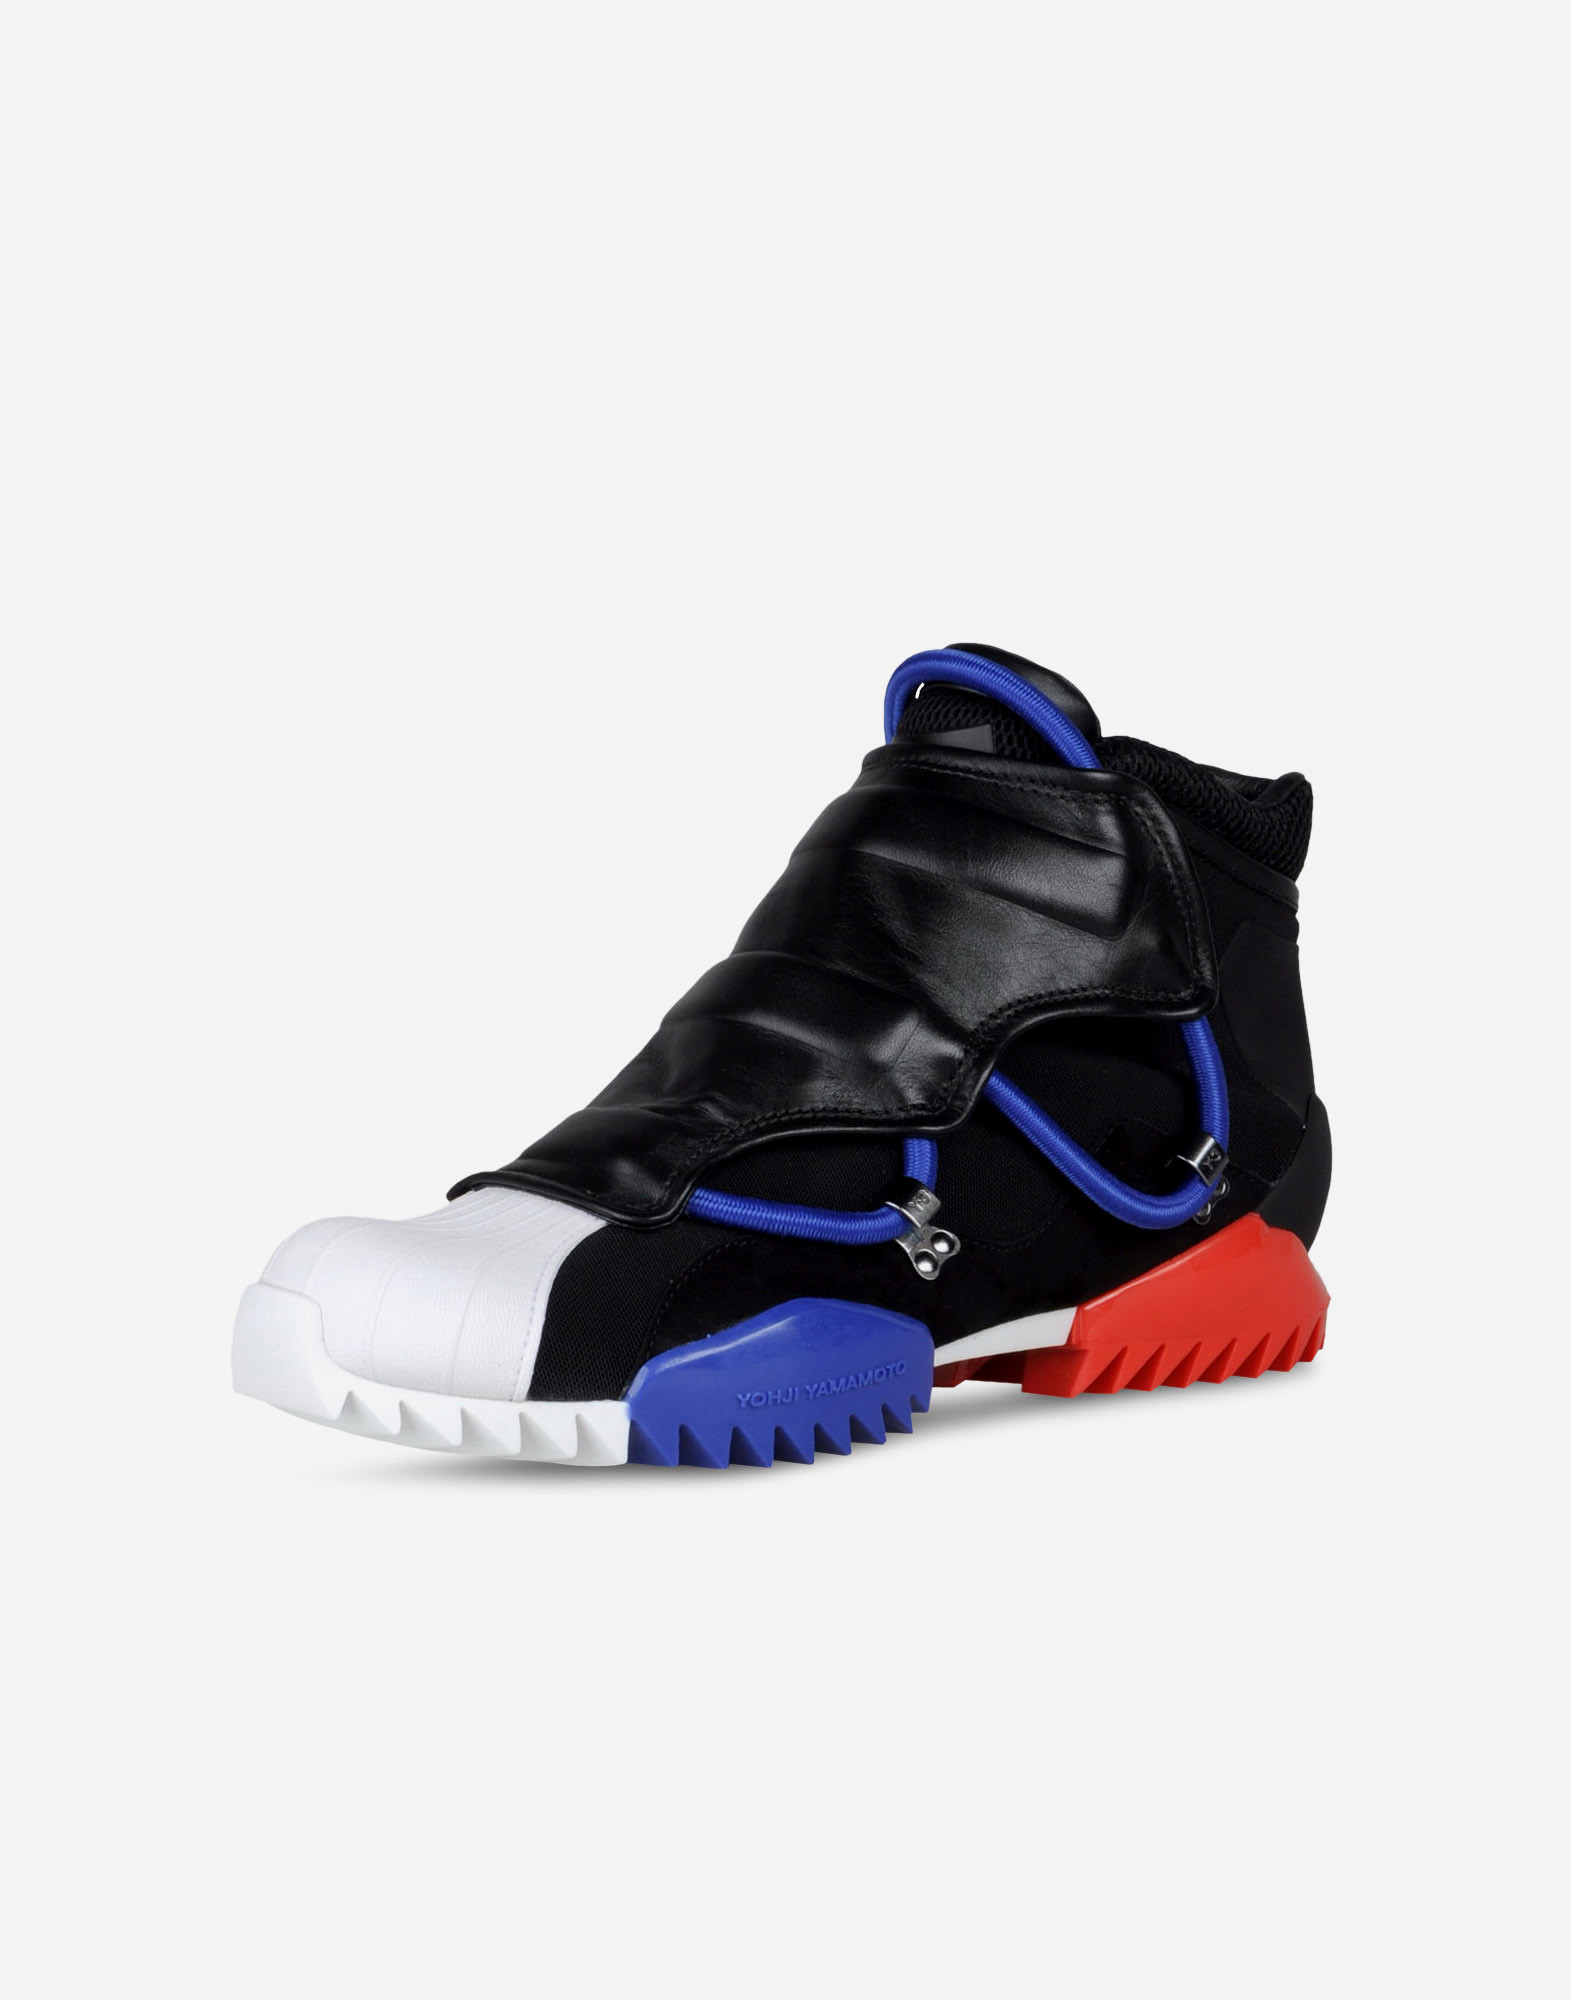 lace up in popular stores buy sale Y 3 Le Savage High Top Sneakers | Adidas Y-3 Official Site